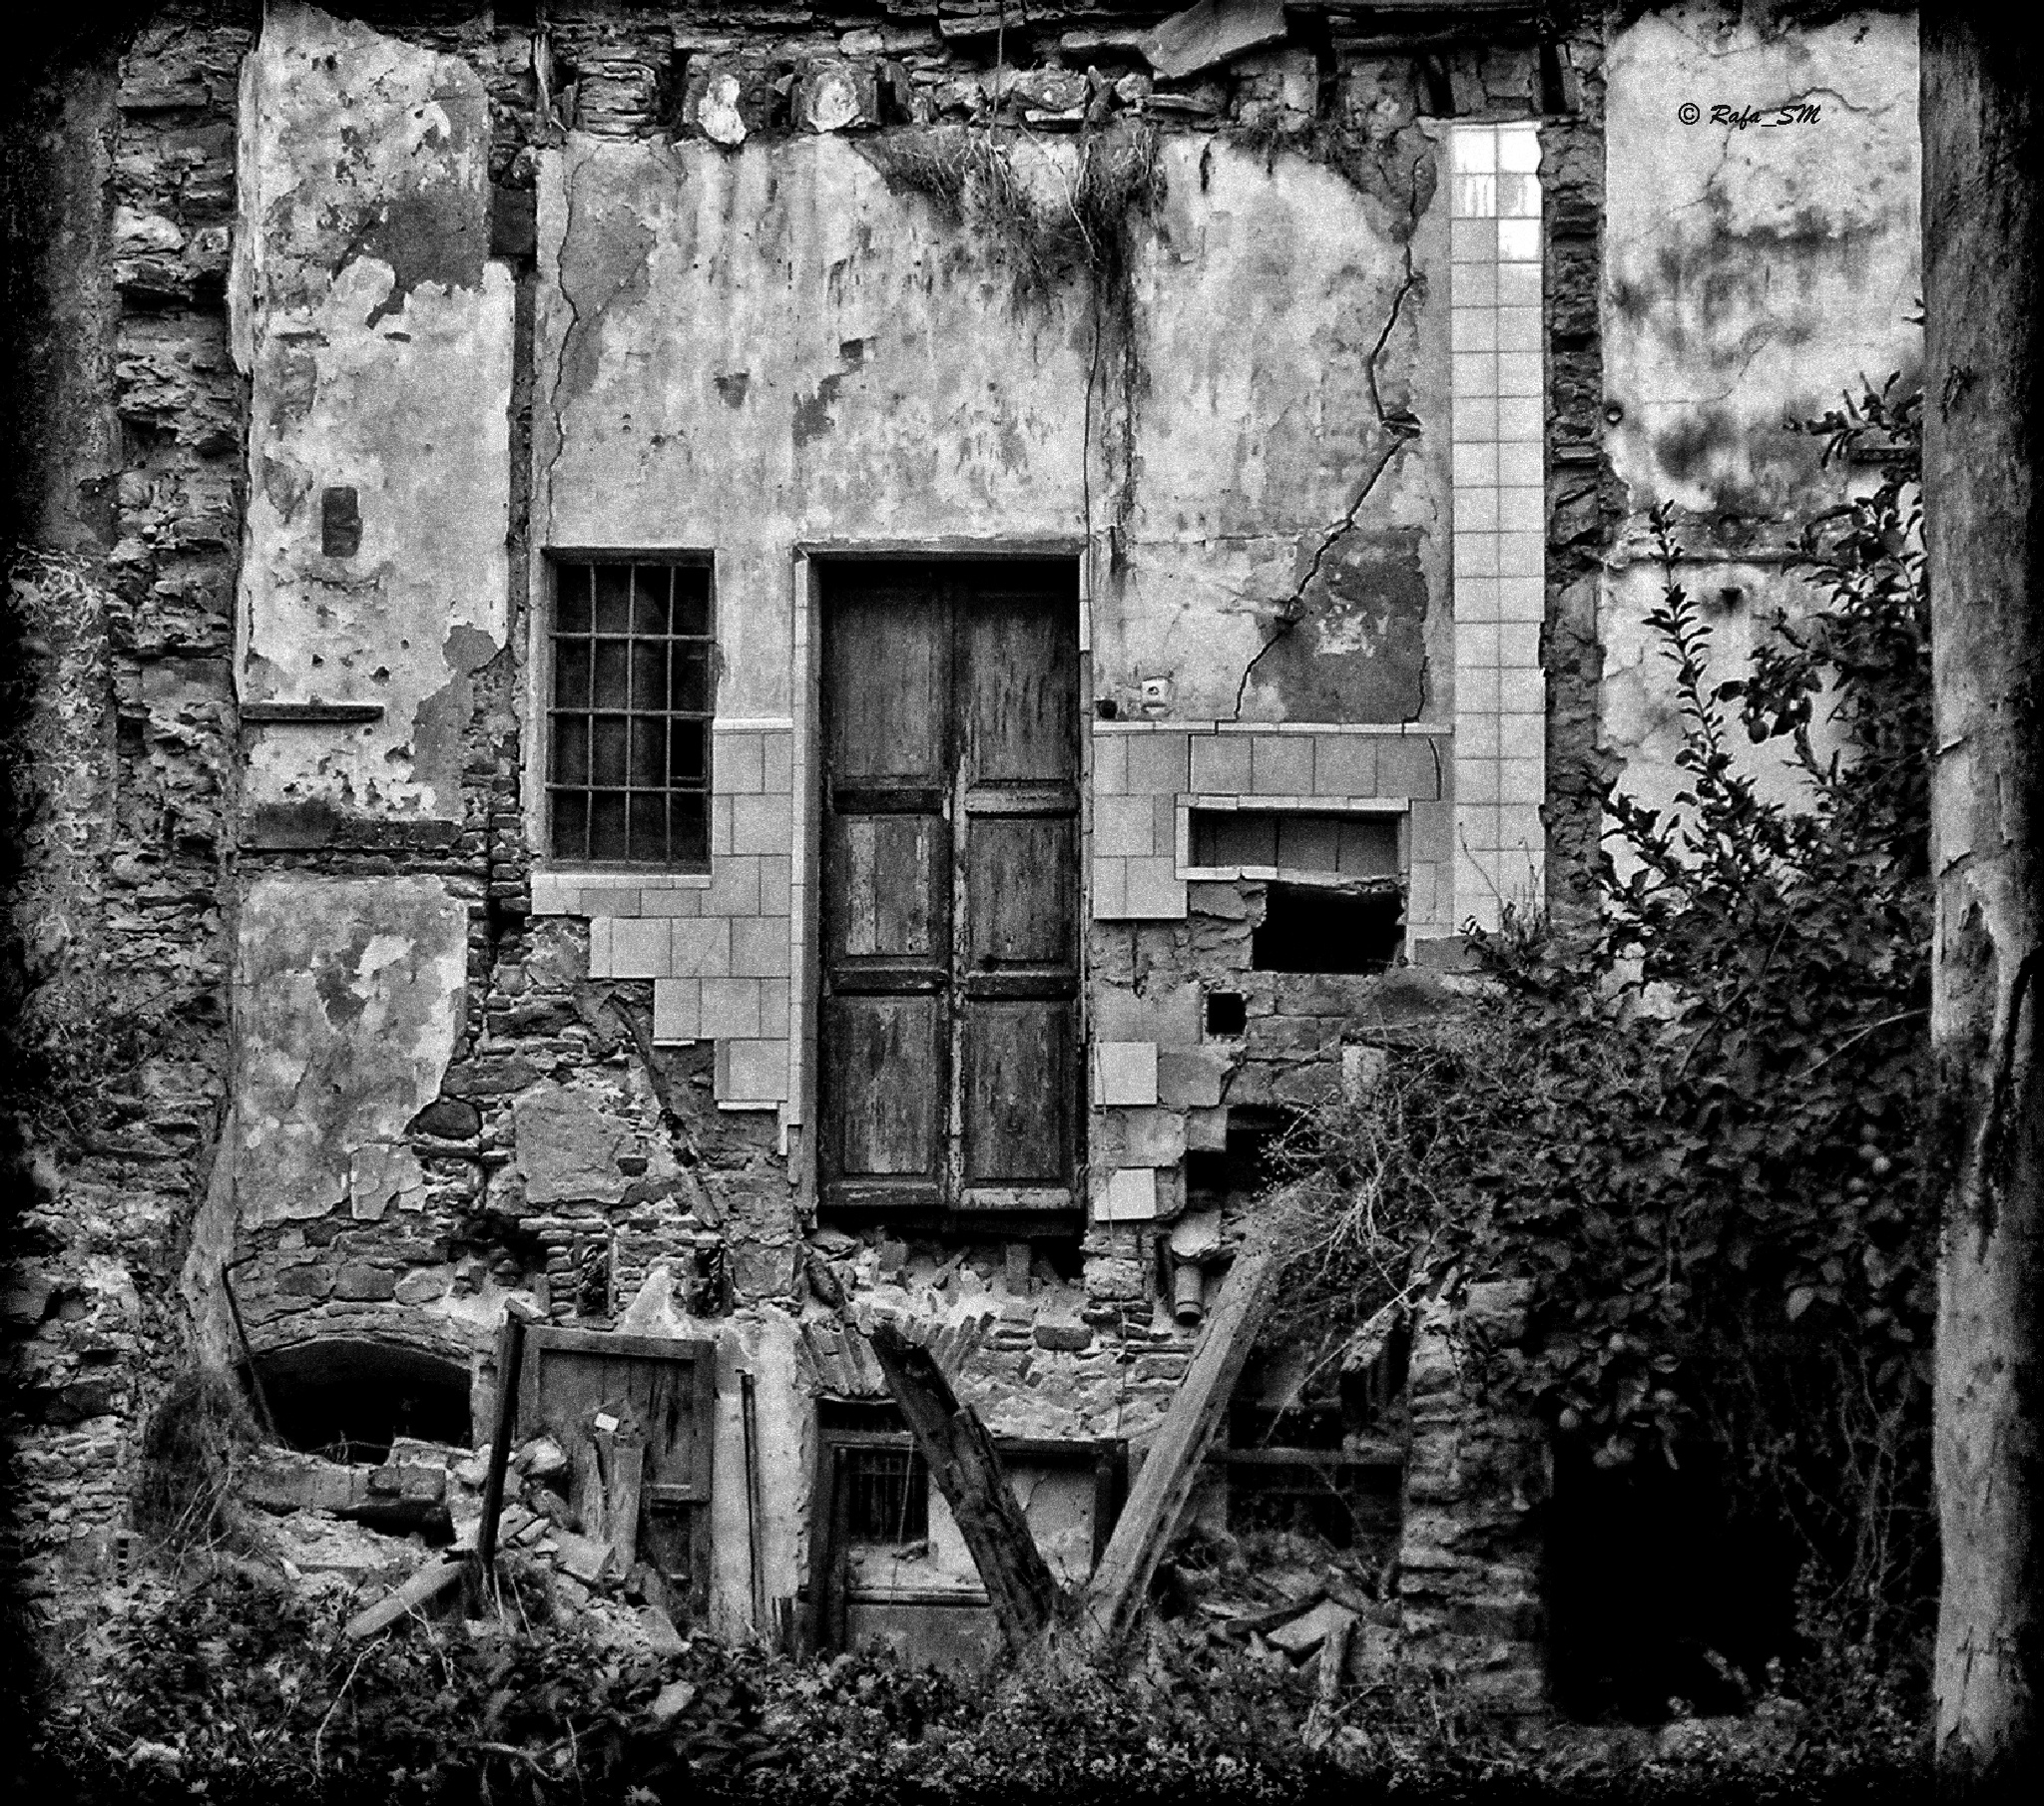 Ruined house by RafaelSM